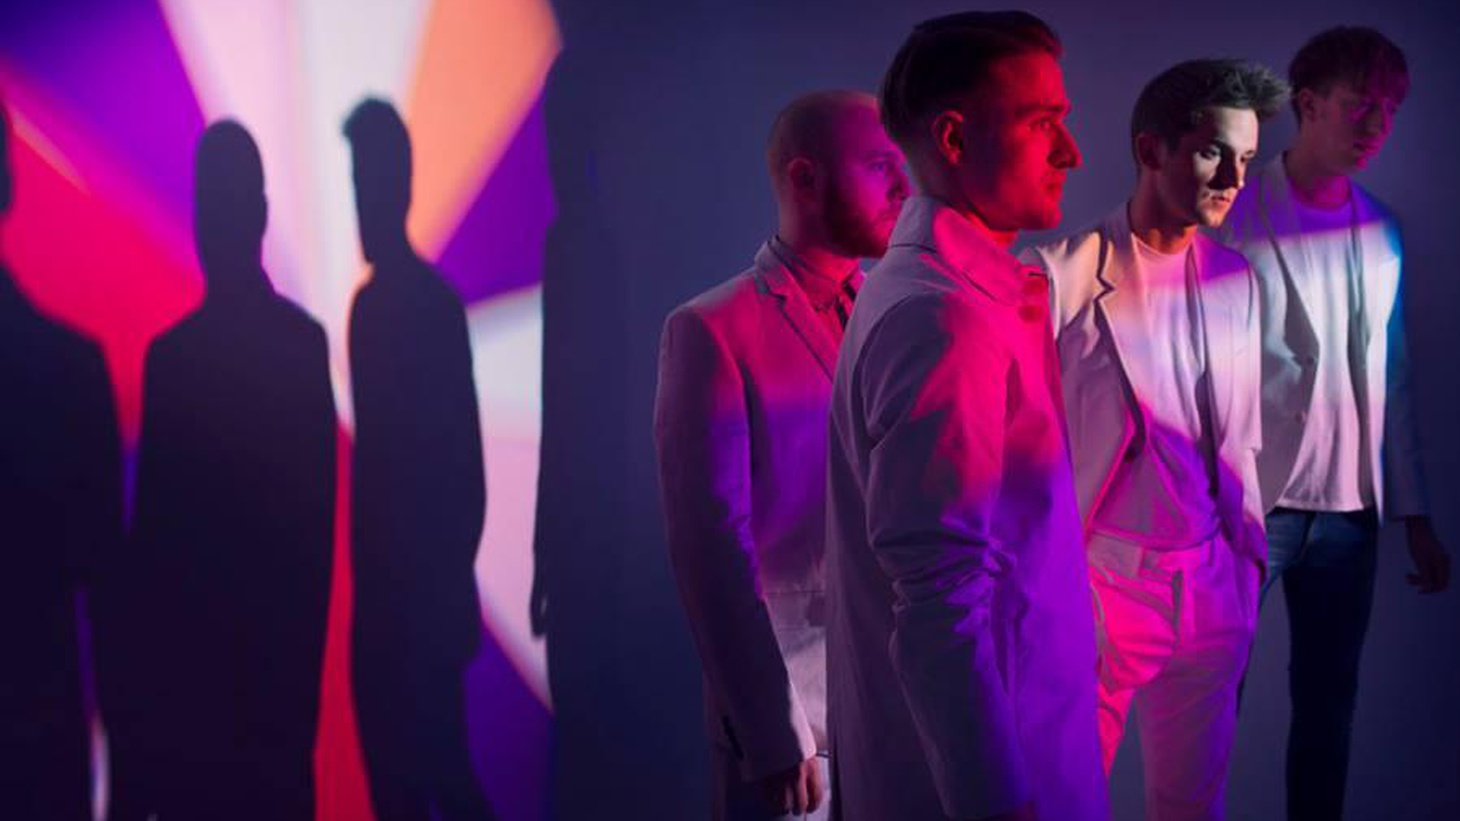 Mercury Prize nominees Wild Beasts provide soaring sonics on their new album.